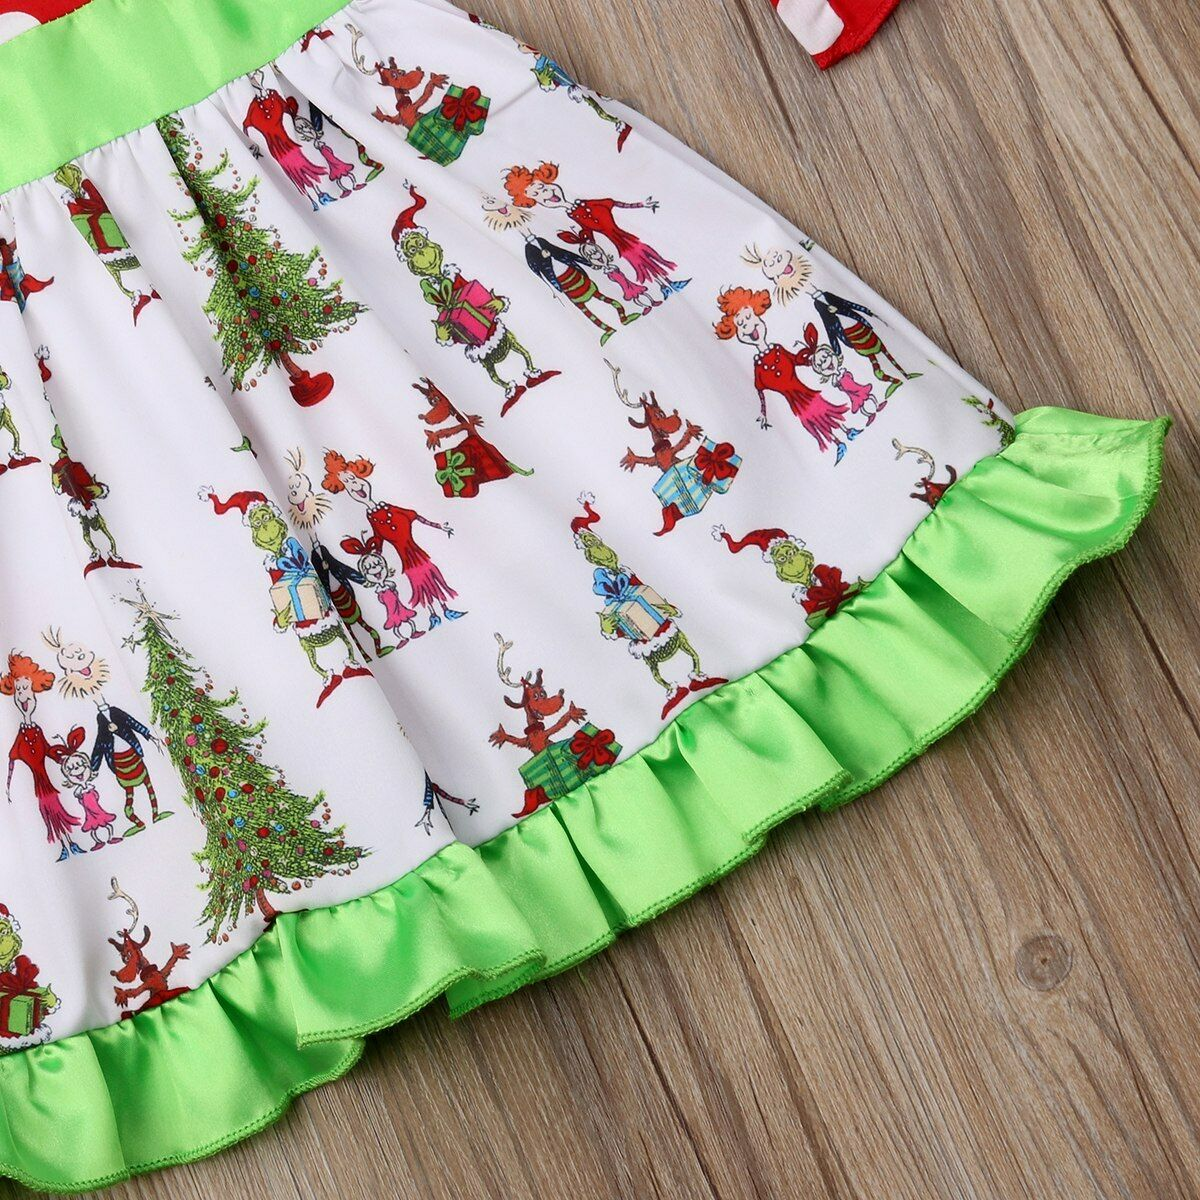 NEW Grinch Stole Christmas Whoville Girls Long Sleeve Dress 2T 3T 4T 5T 6